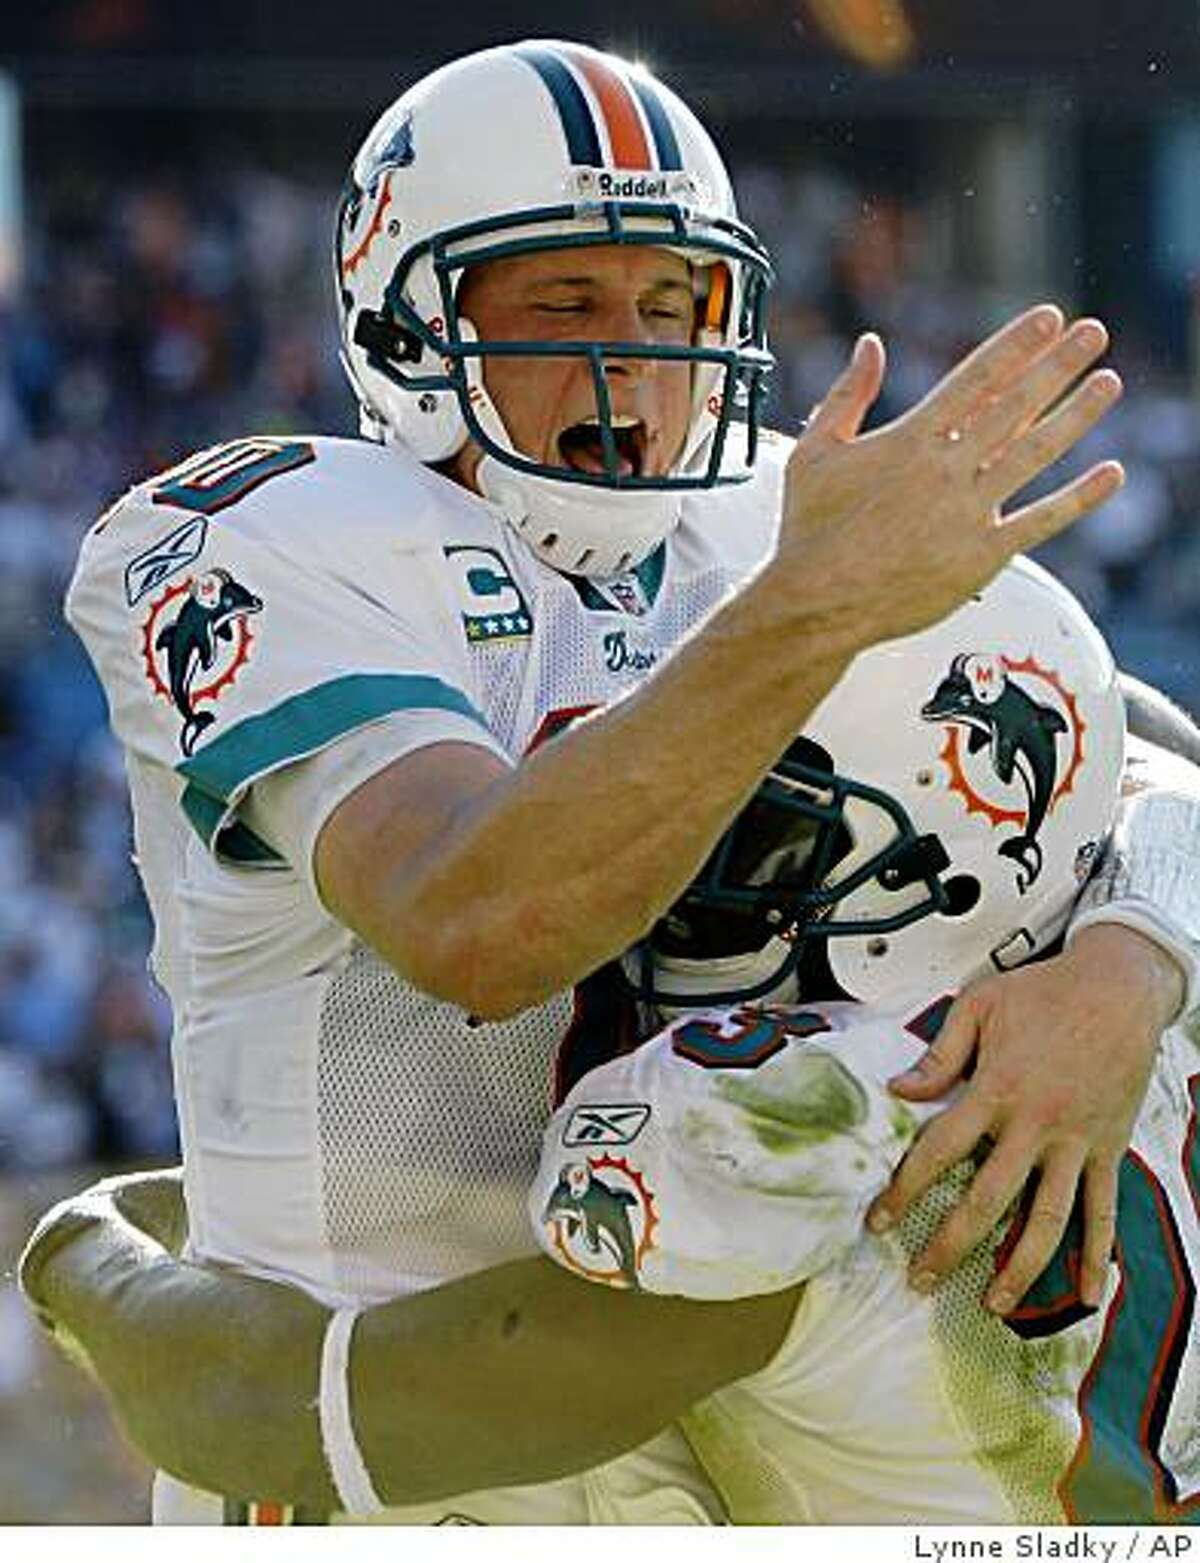 Miami Dolphins quarterback Chad Pennington, left, and running back Ronnie Brown, right, celebrate after he scored a touchdown in the fourth quarter against the Seattle Seahawks during a football game in Miami, Sunday, Nov. 9, 2008. The Dolphins won 21-19. (AP Photo/Lynne Sladky)